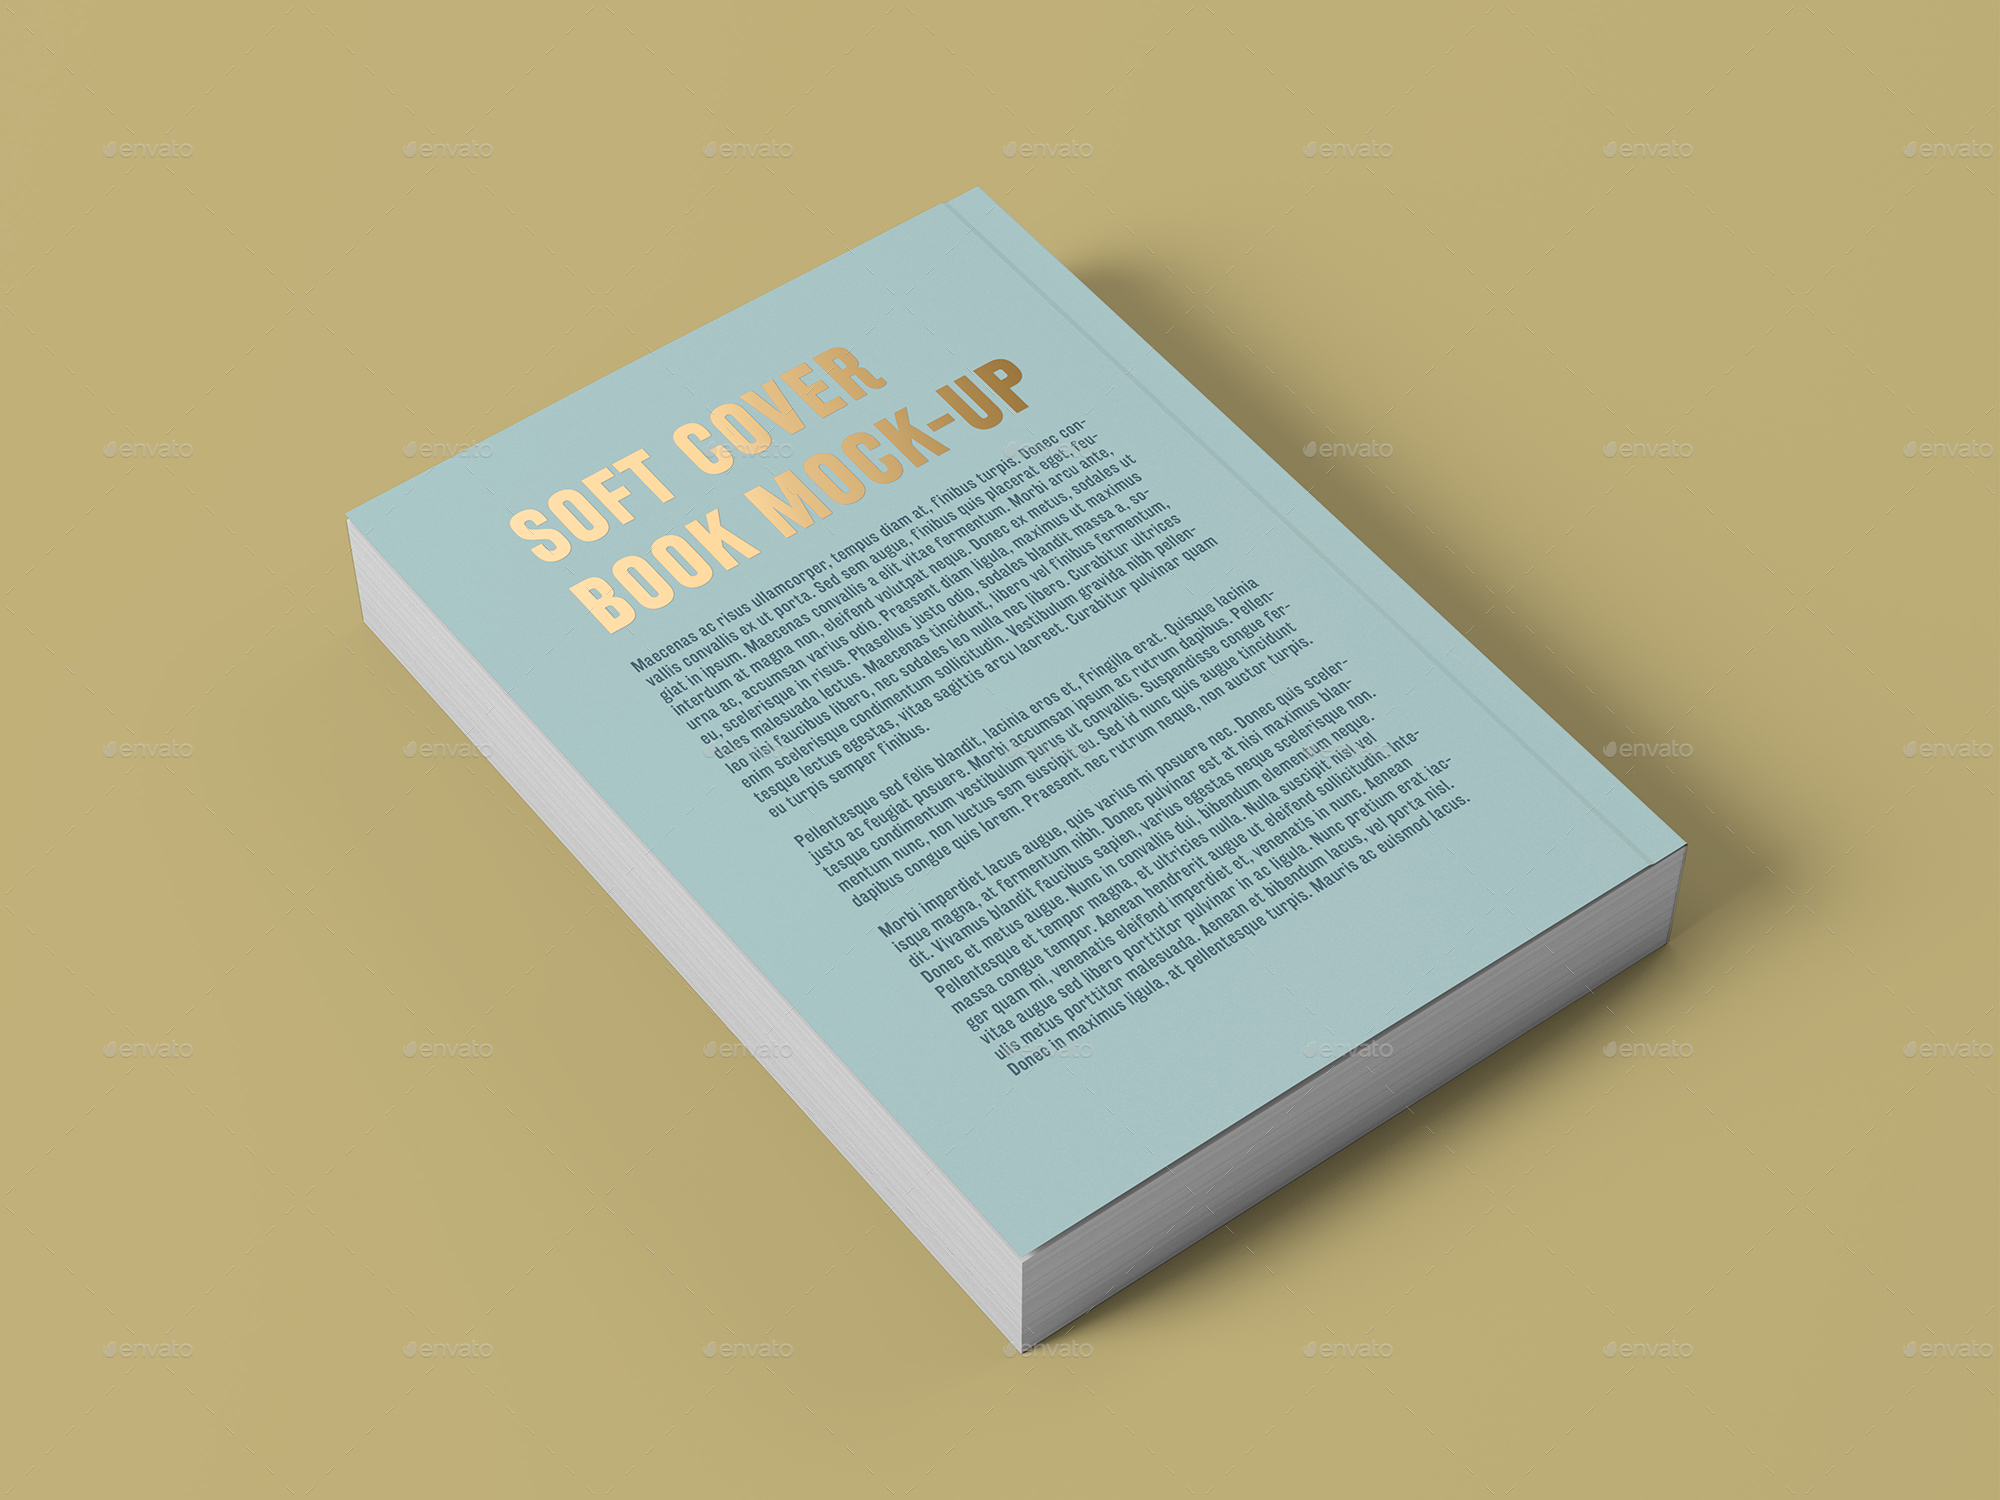 Vintage Soft Cover Book Mock Up ~ Soft cover book with foil stamping mock up by professorinc